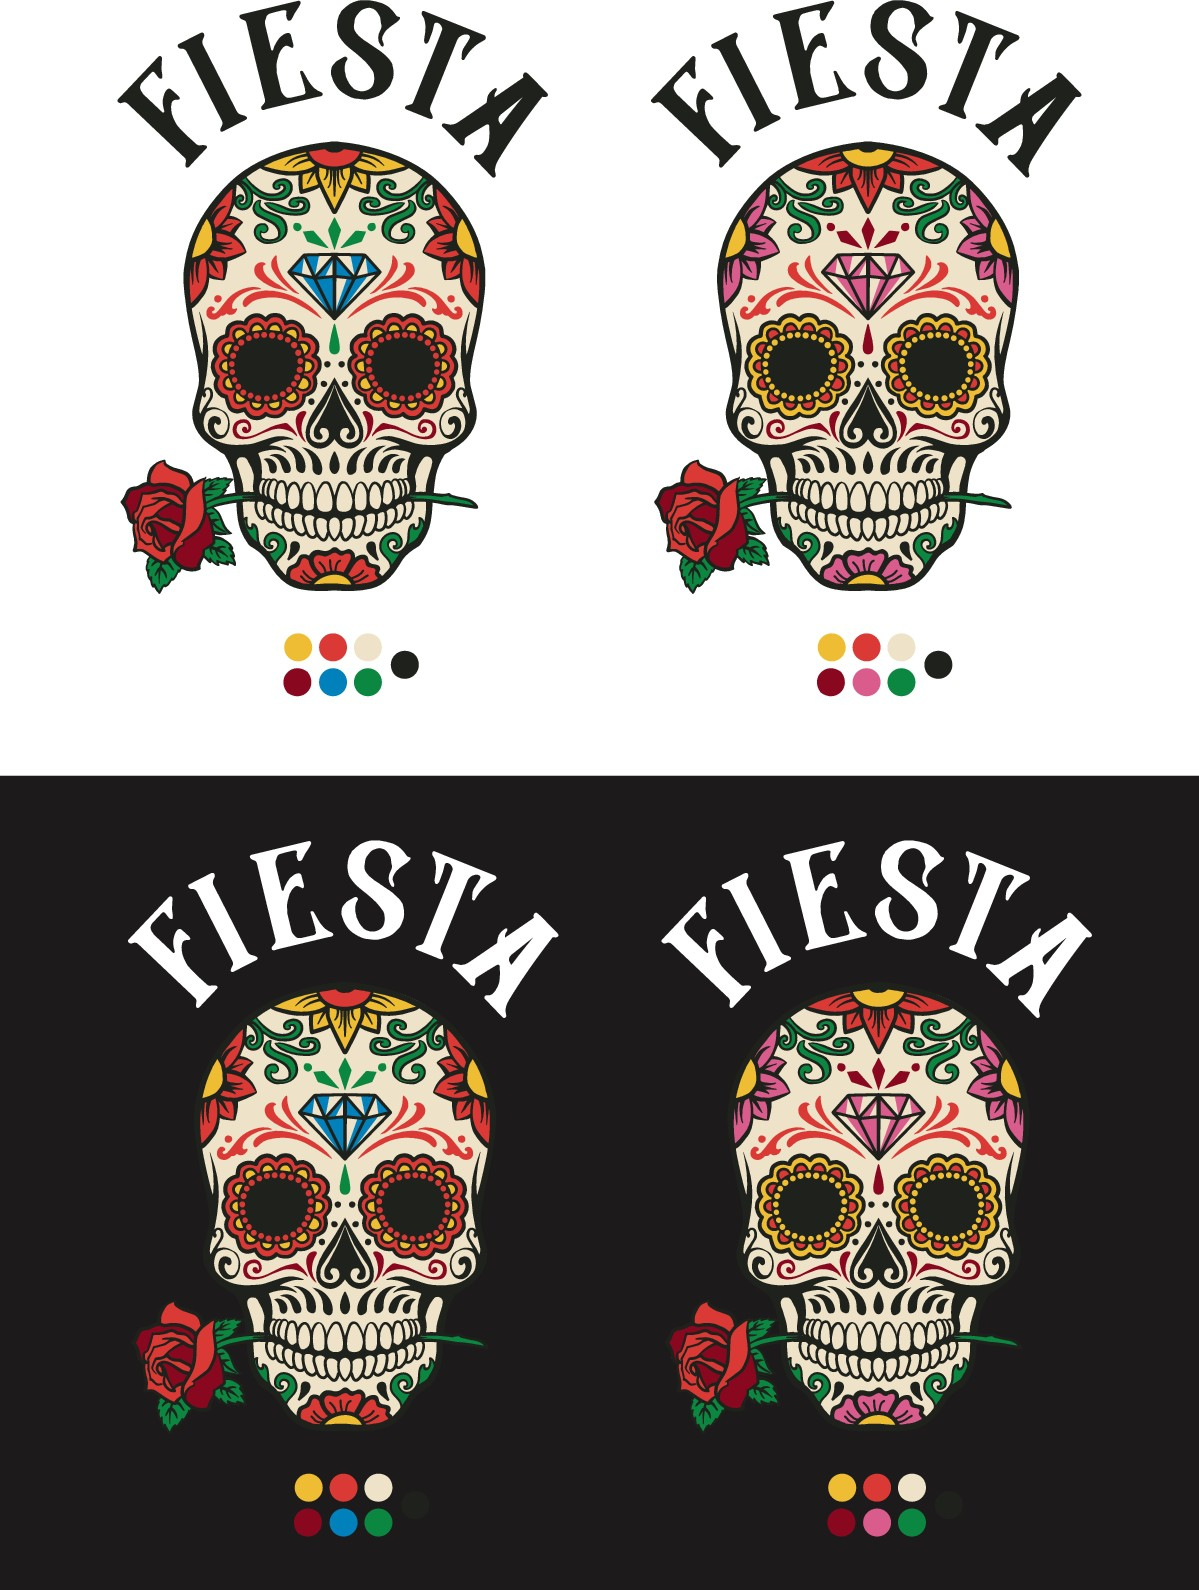 Reduce color and simplify skull design